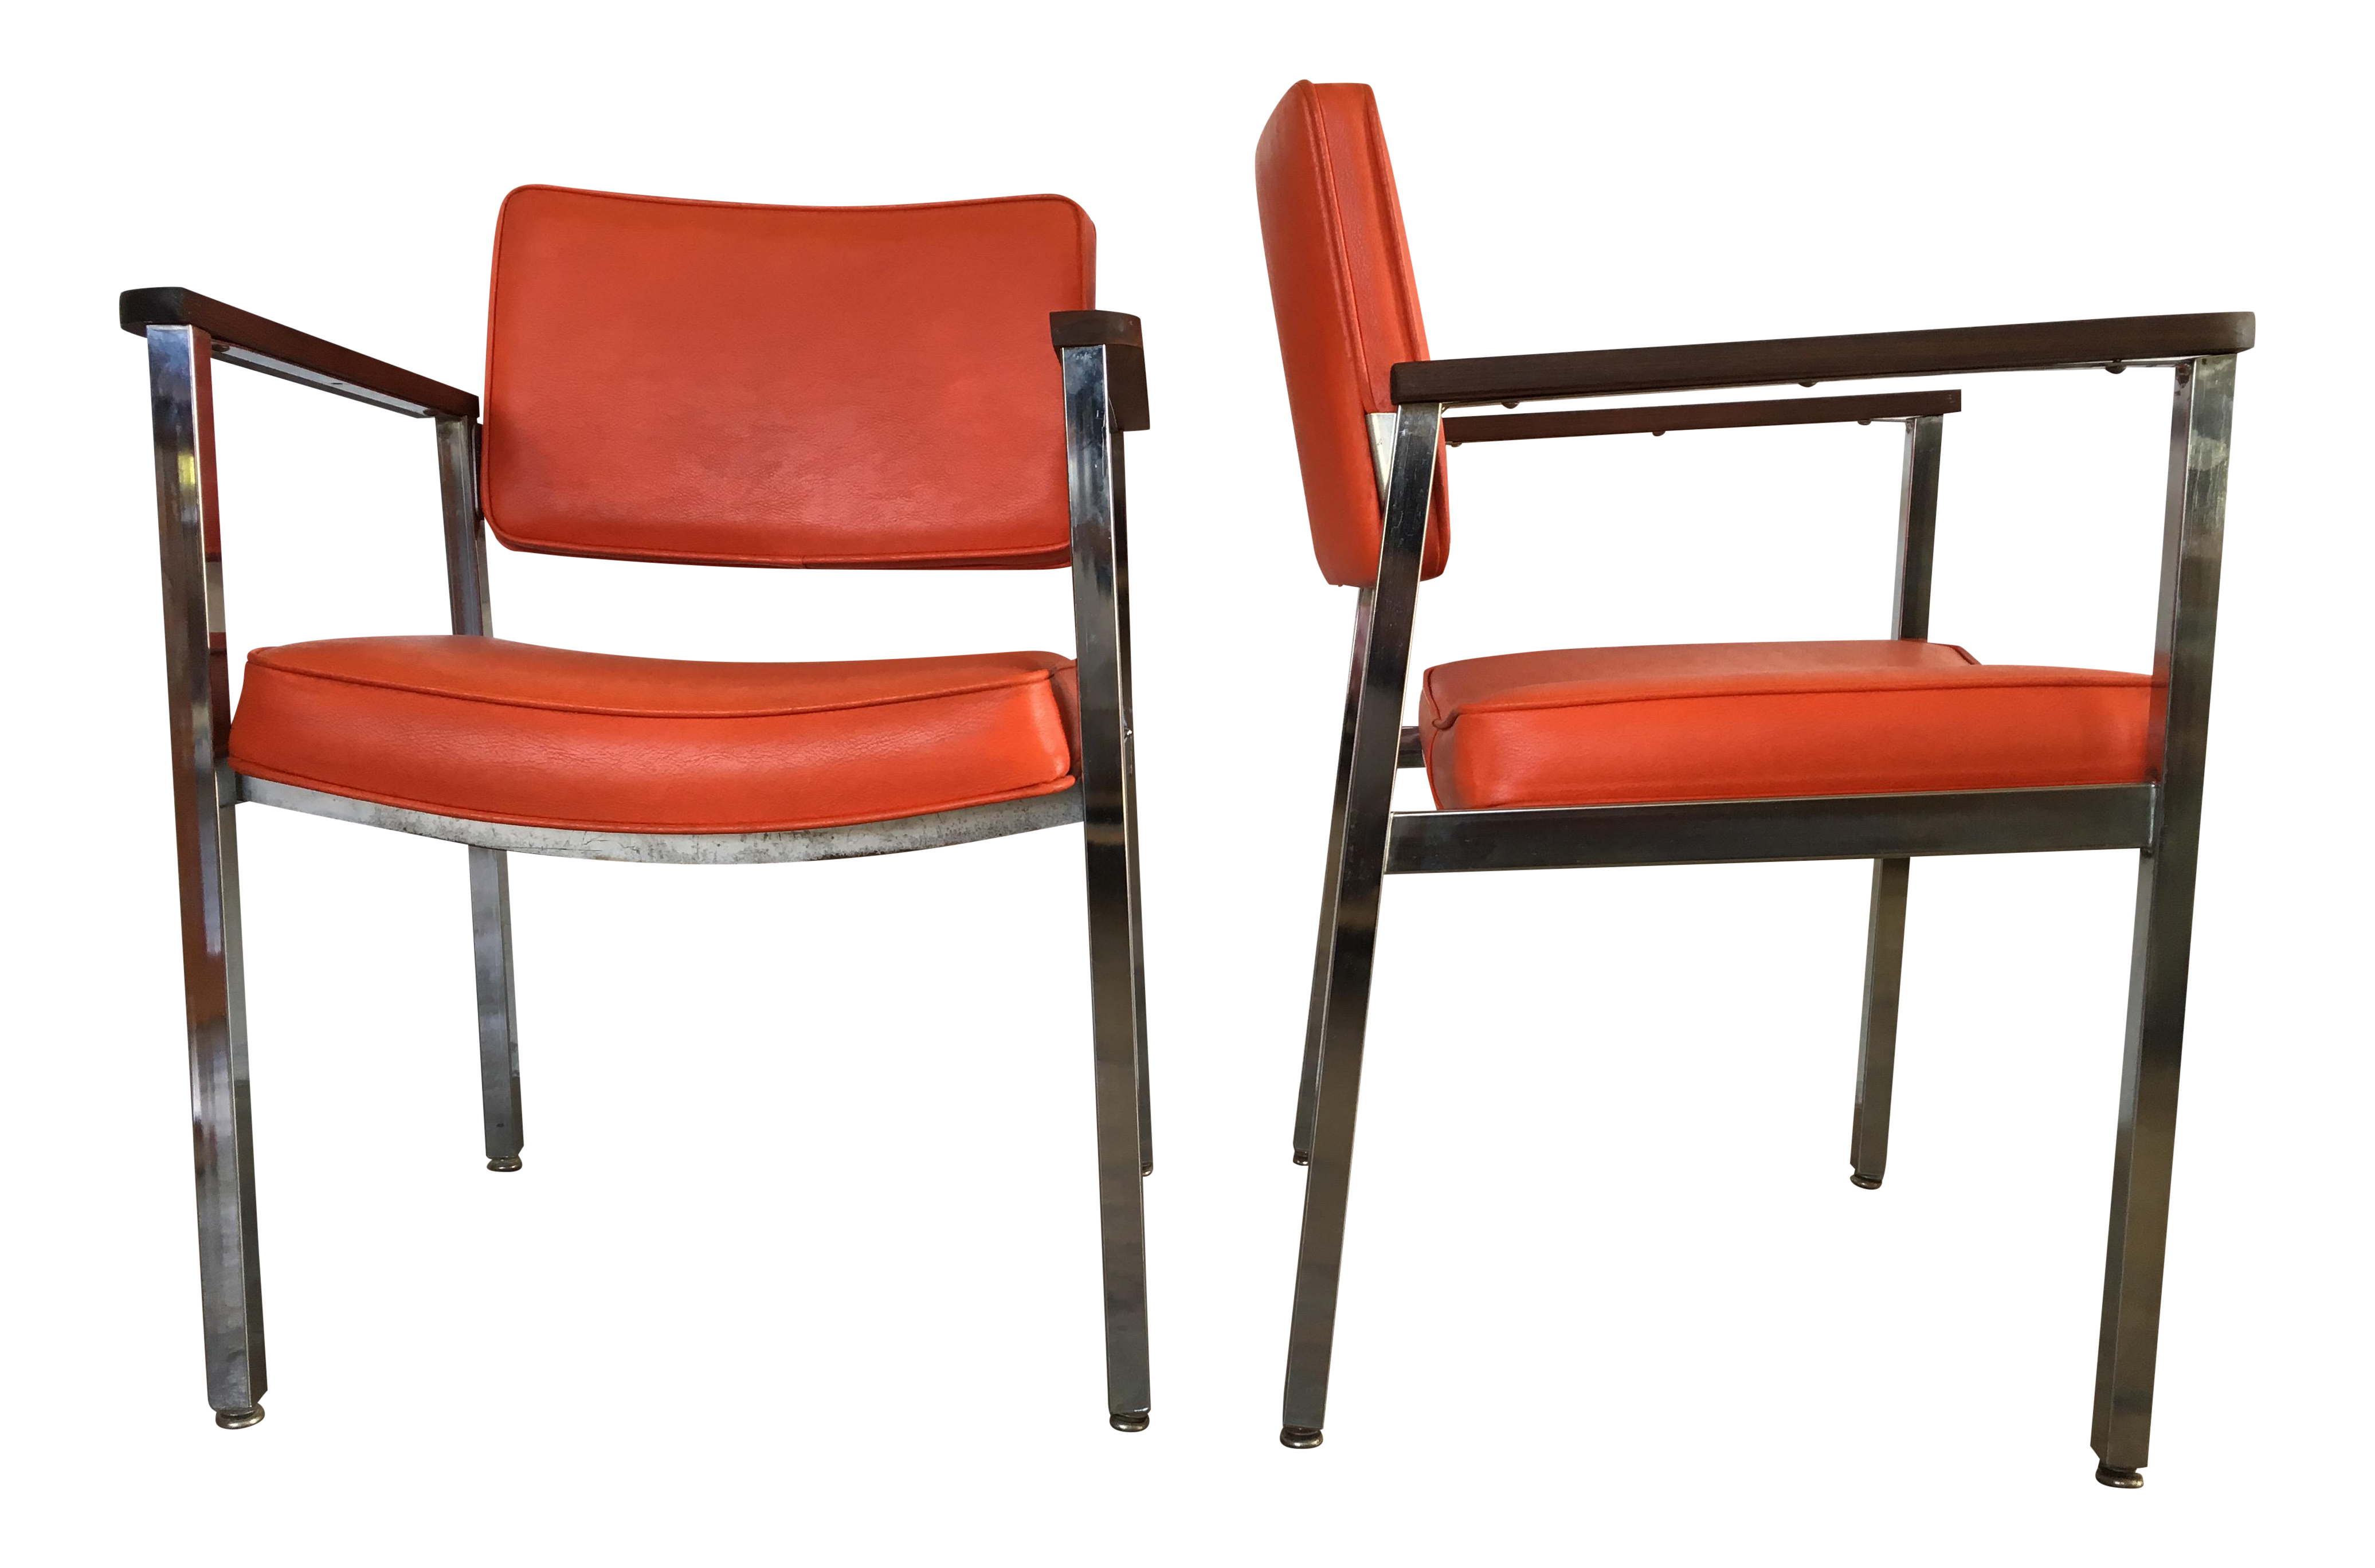 1960s vintage haskell midcentury modern office chairs a pair image 1 of